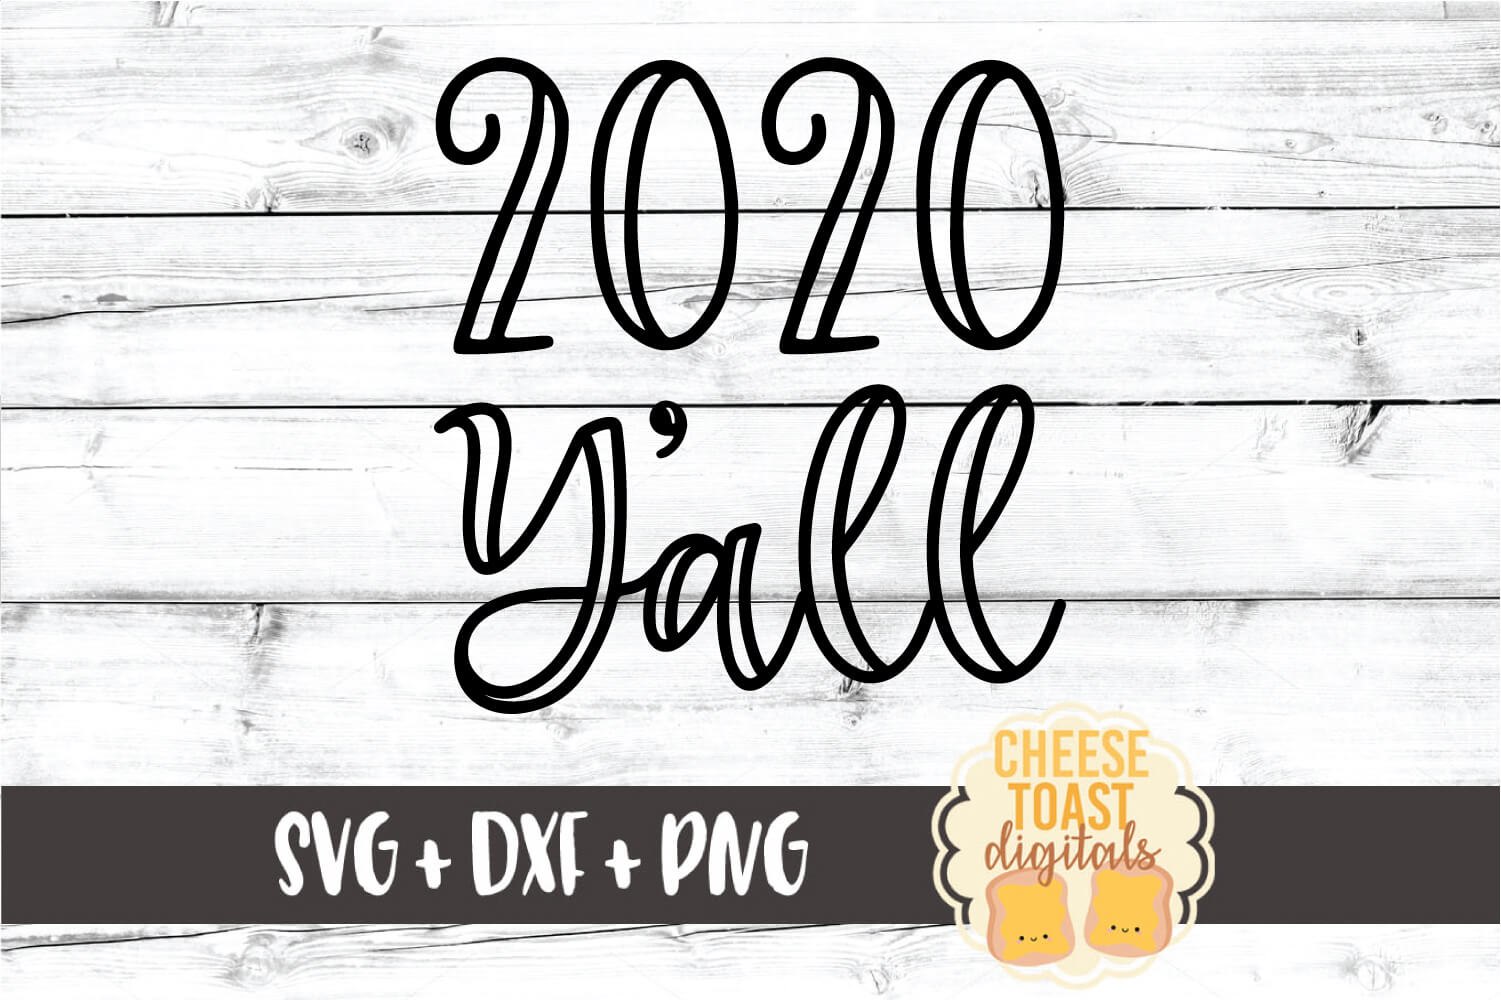 2020 Y'all - New Year SVG PNG DXF Cut Files example image 2